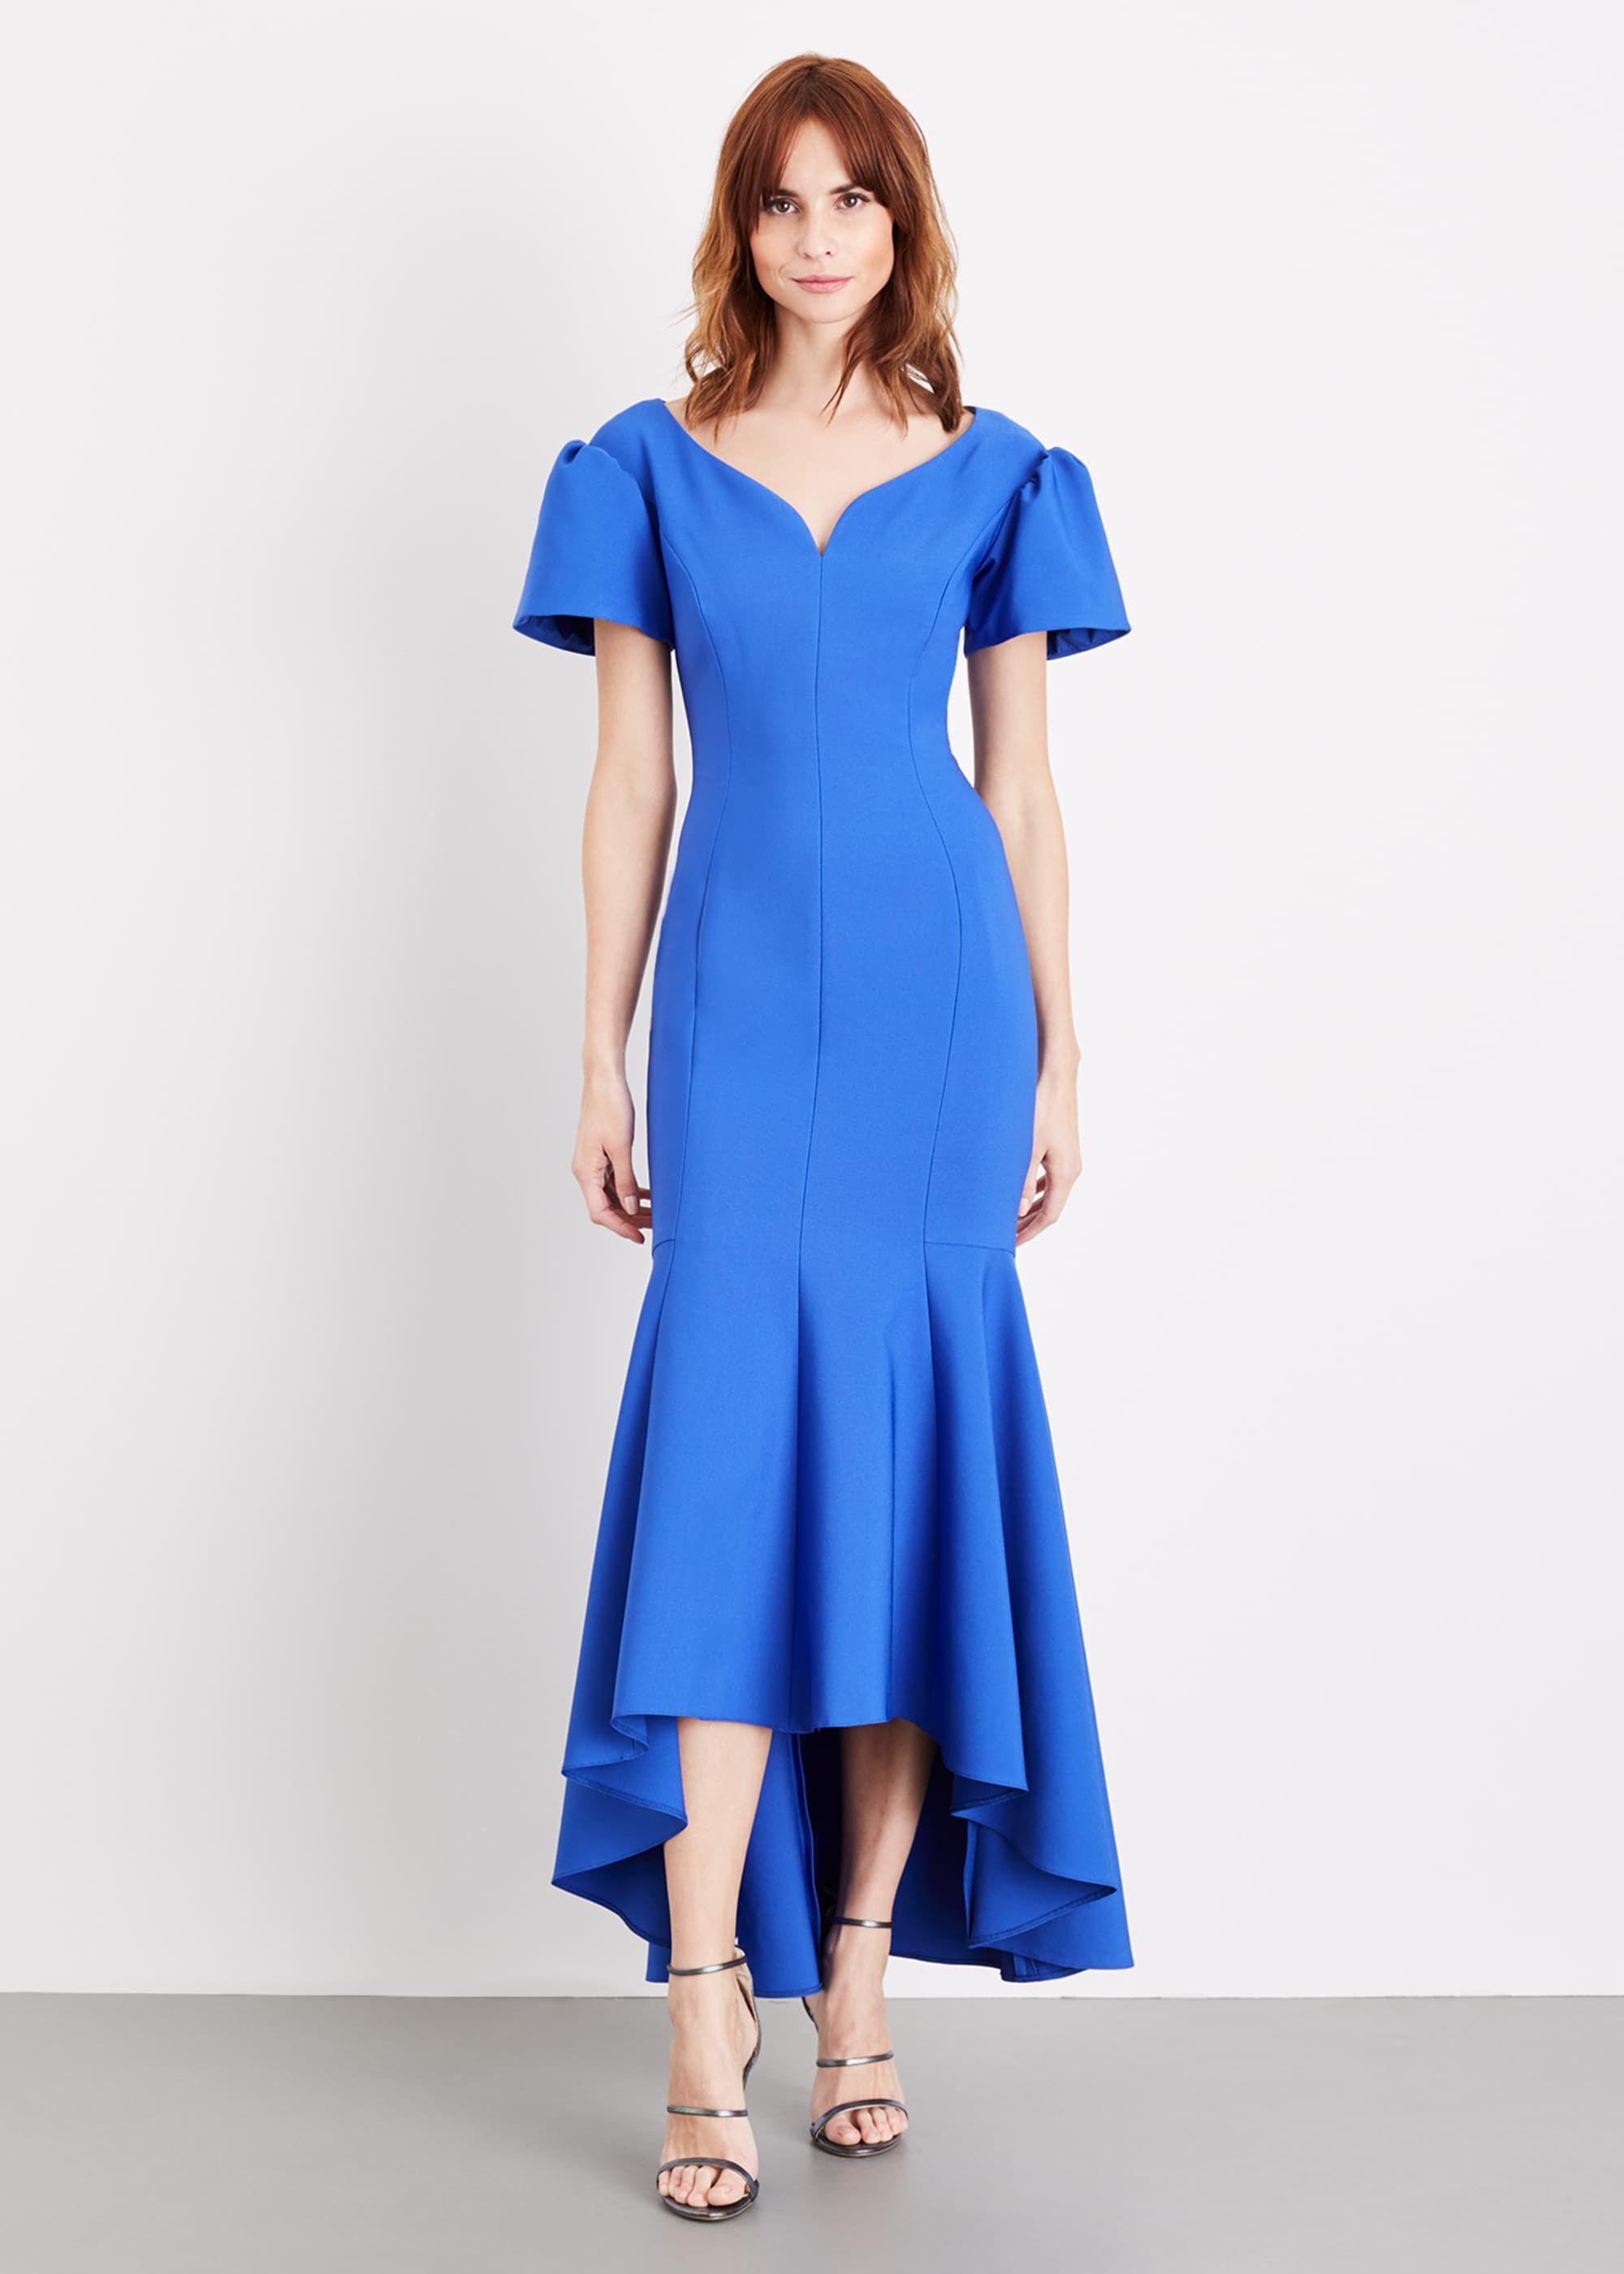 Damsel in a Dress Maddi Bardot Maxi Dress, Blue, Occasion Dress